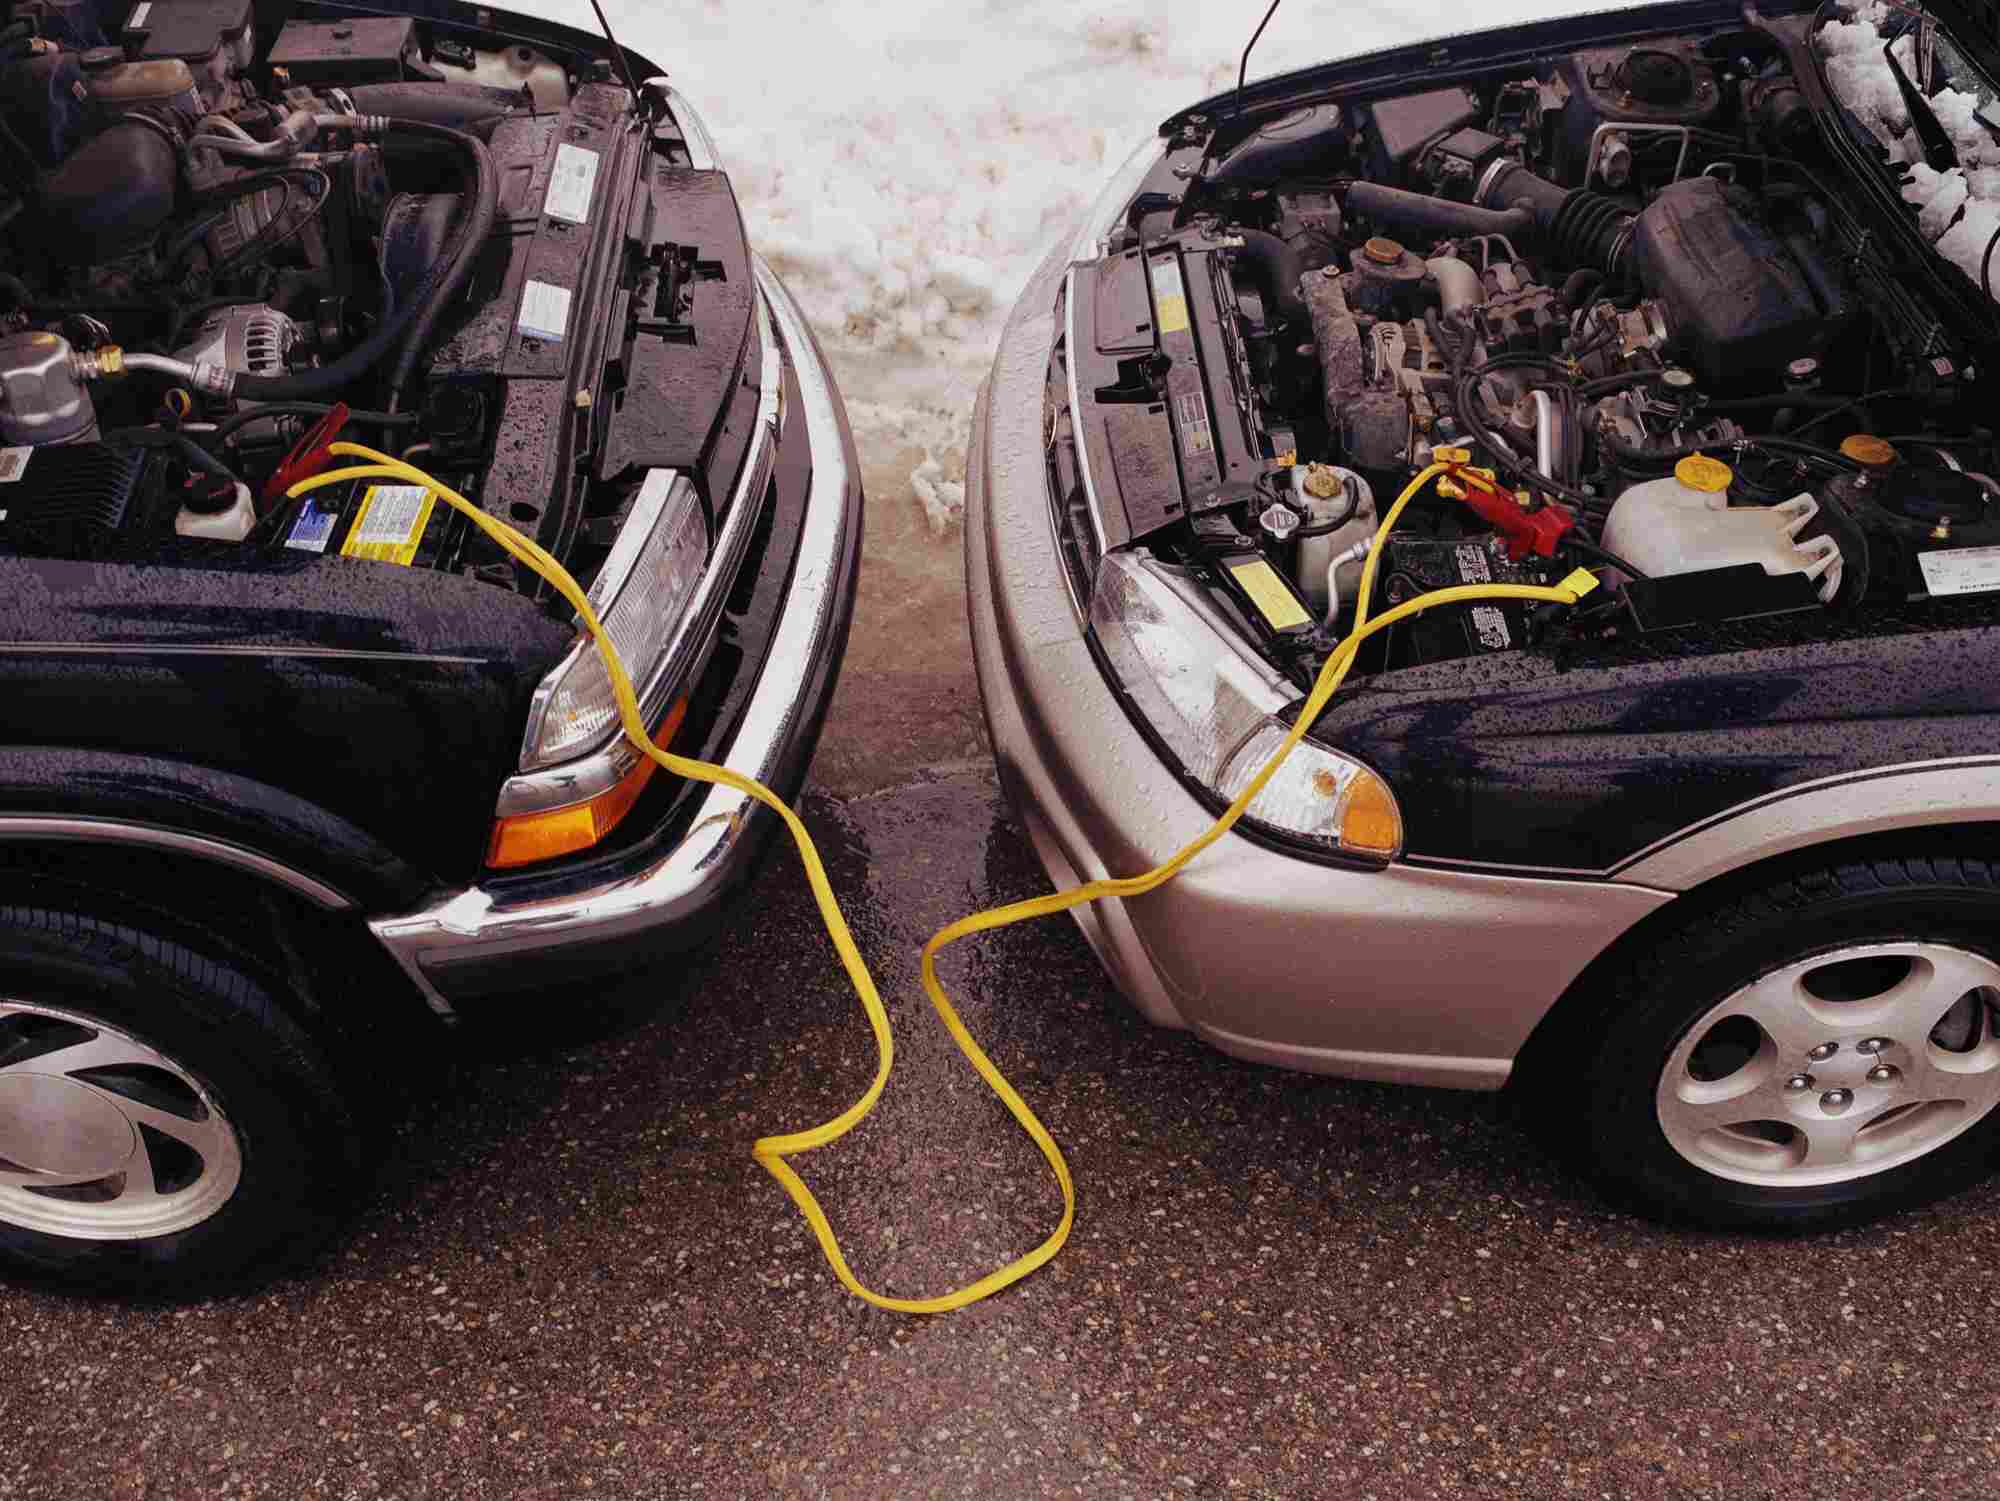 In Case Of A Dead Battery Two Vehicles And Jumper Cables Come Together To Get